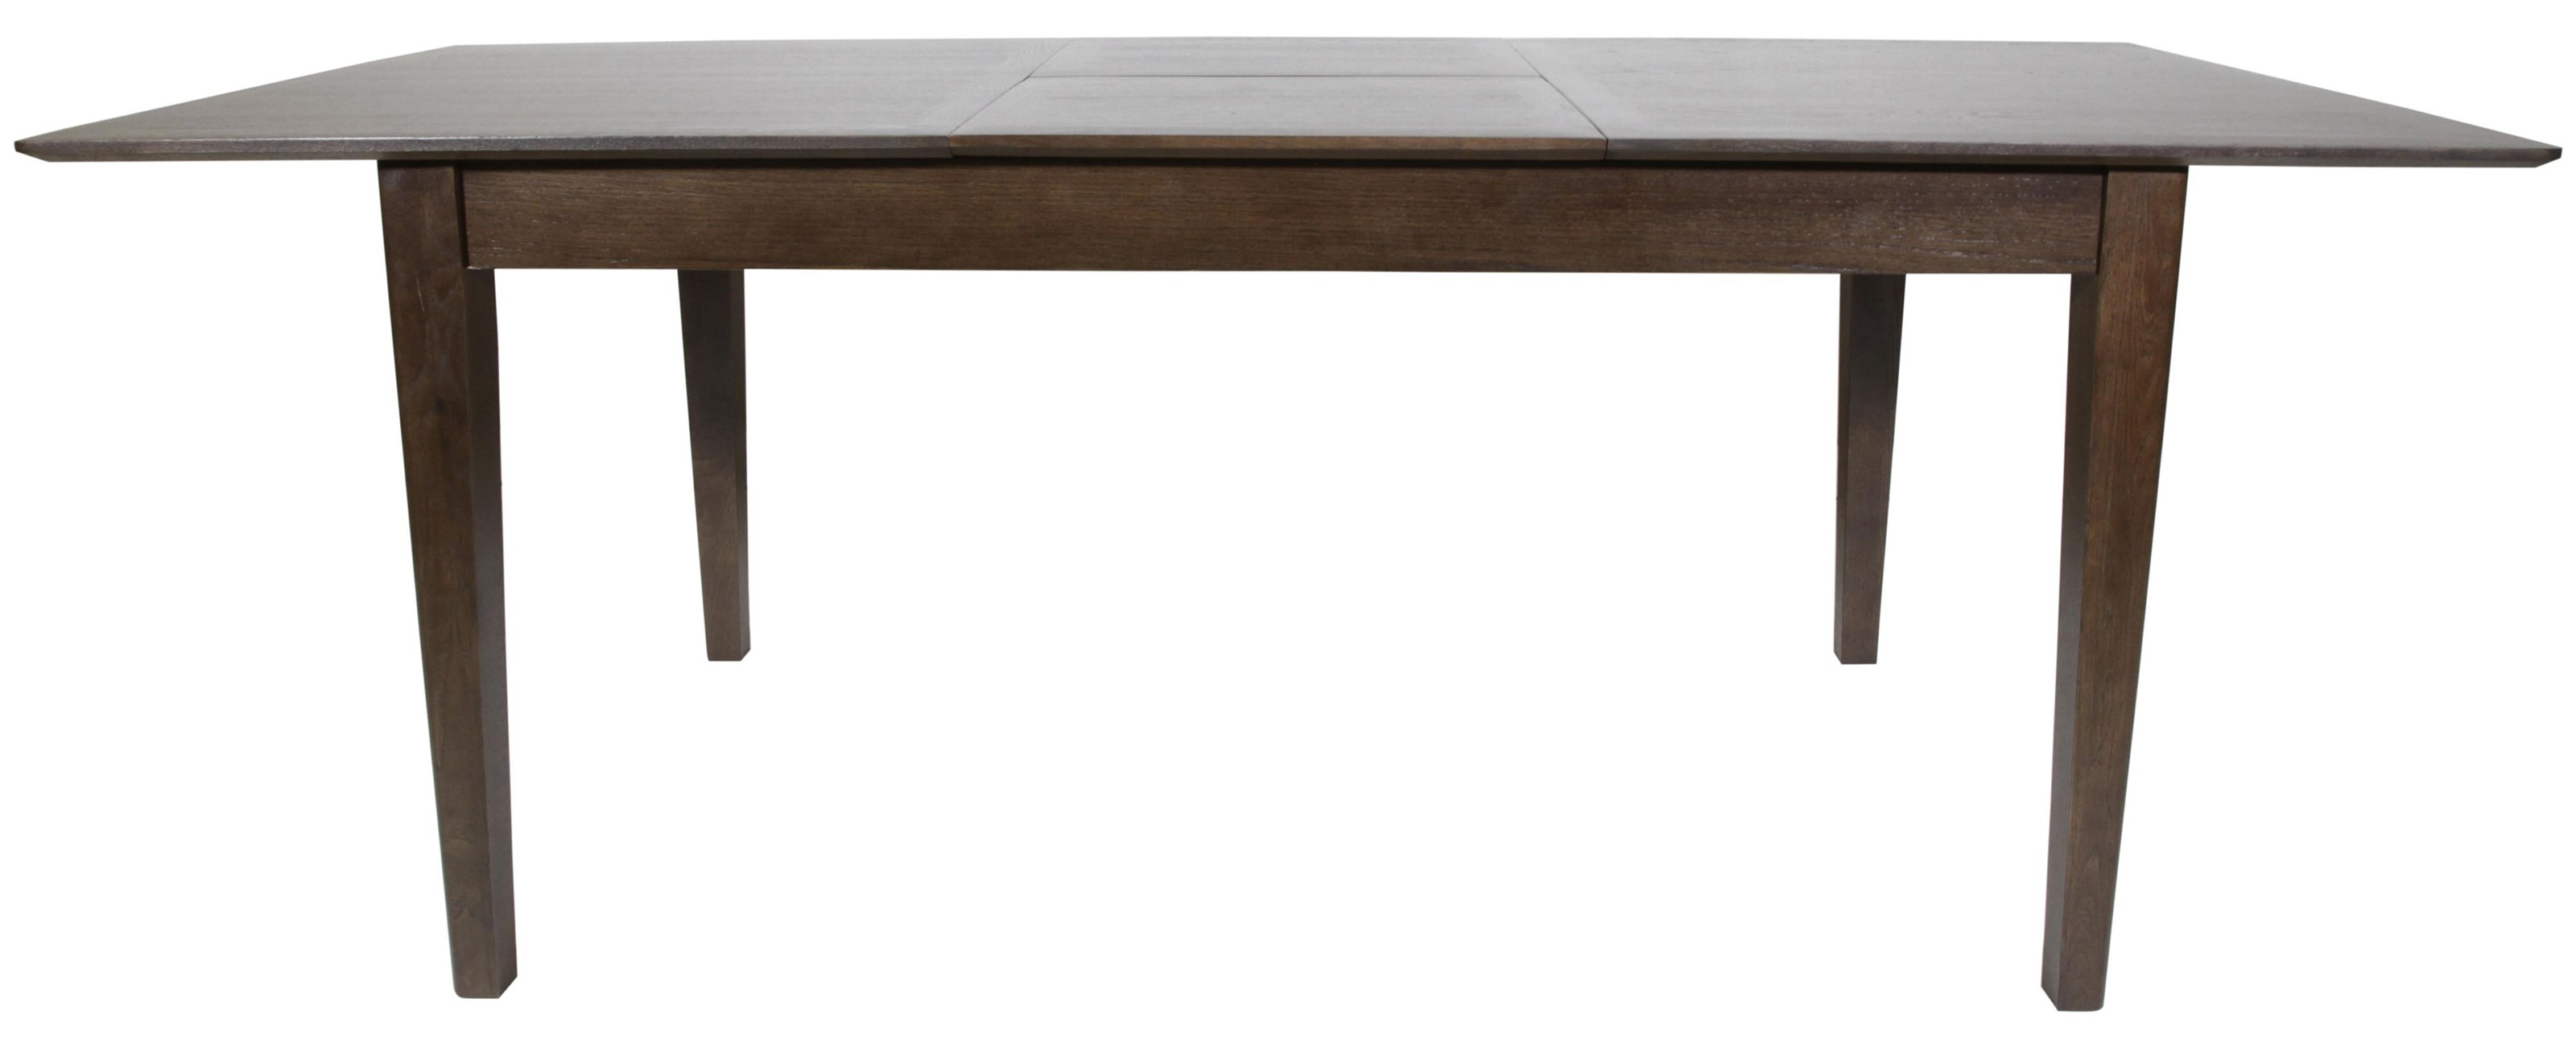 Amherst Dining Table by Global Home at Red Knot